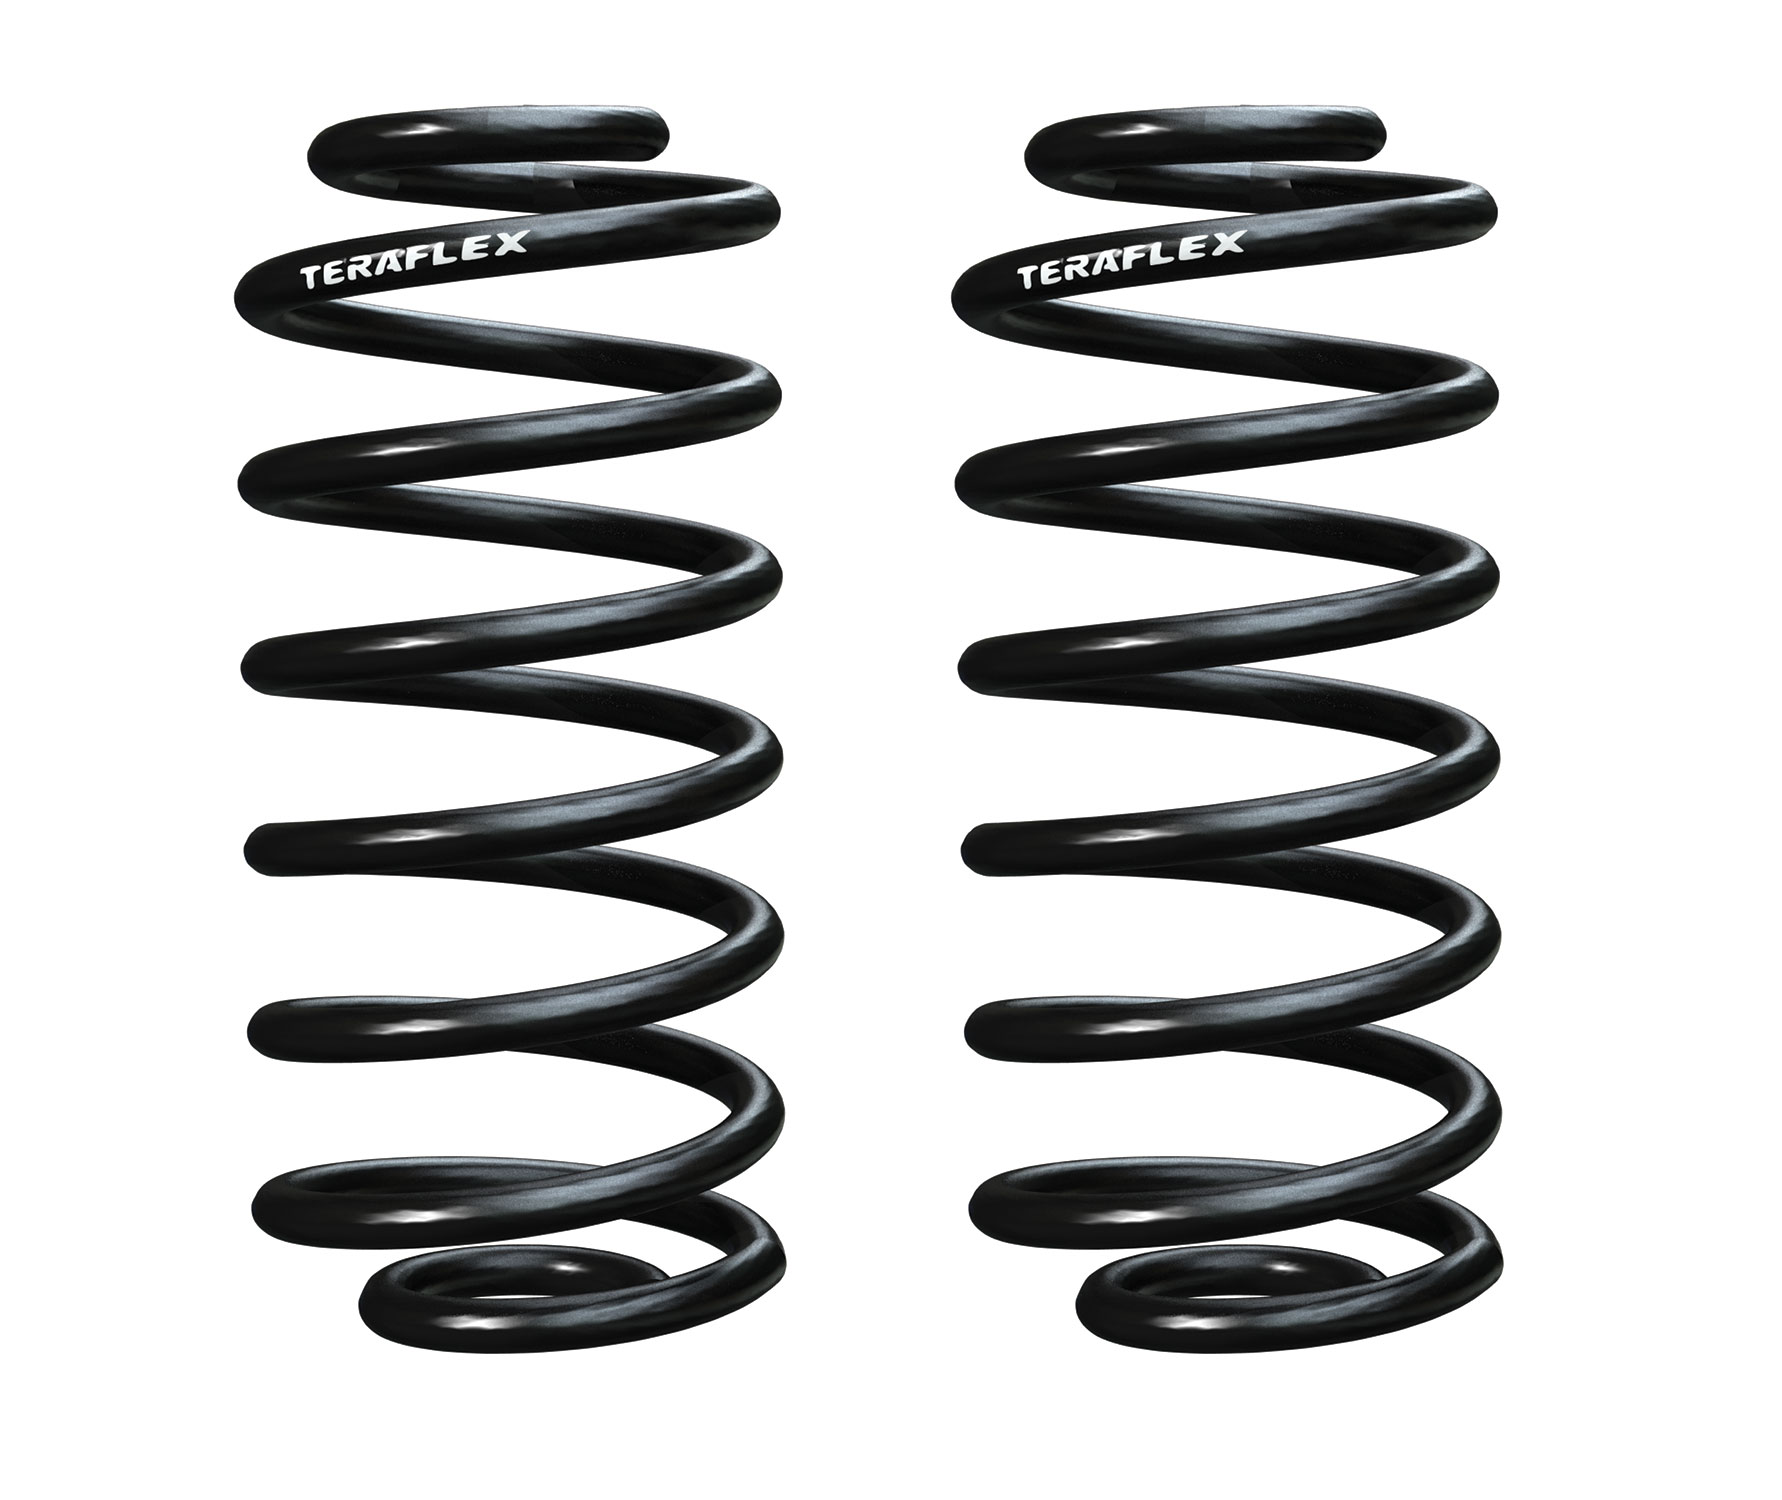 Teraflex Rear Coil Springs 4in - TJ/LJ